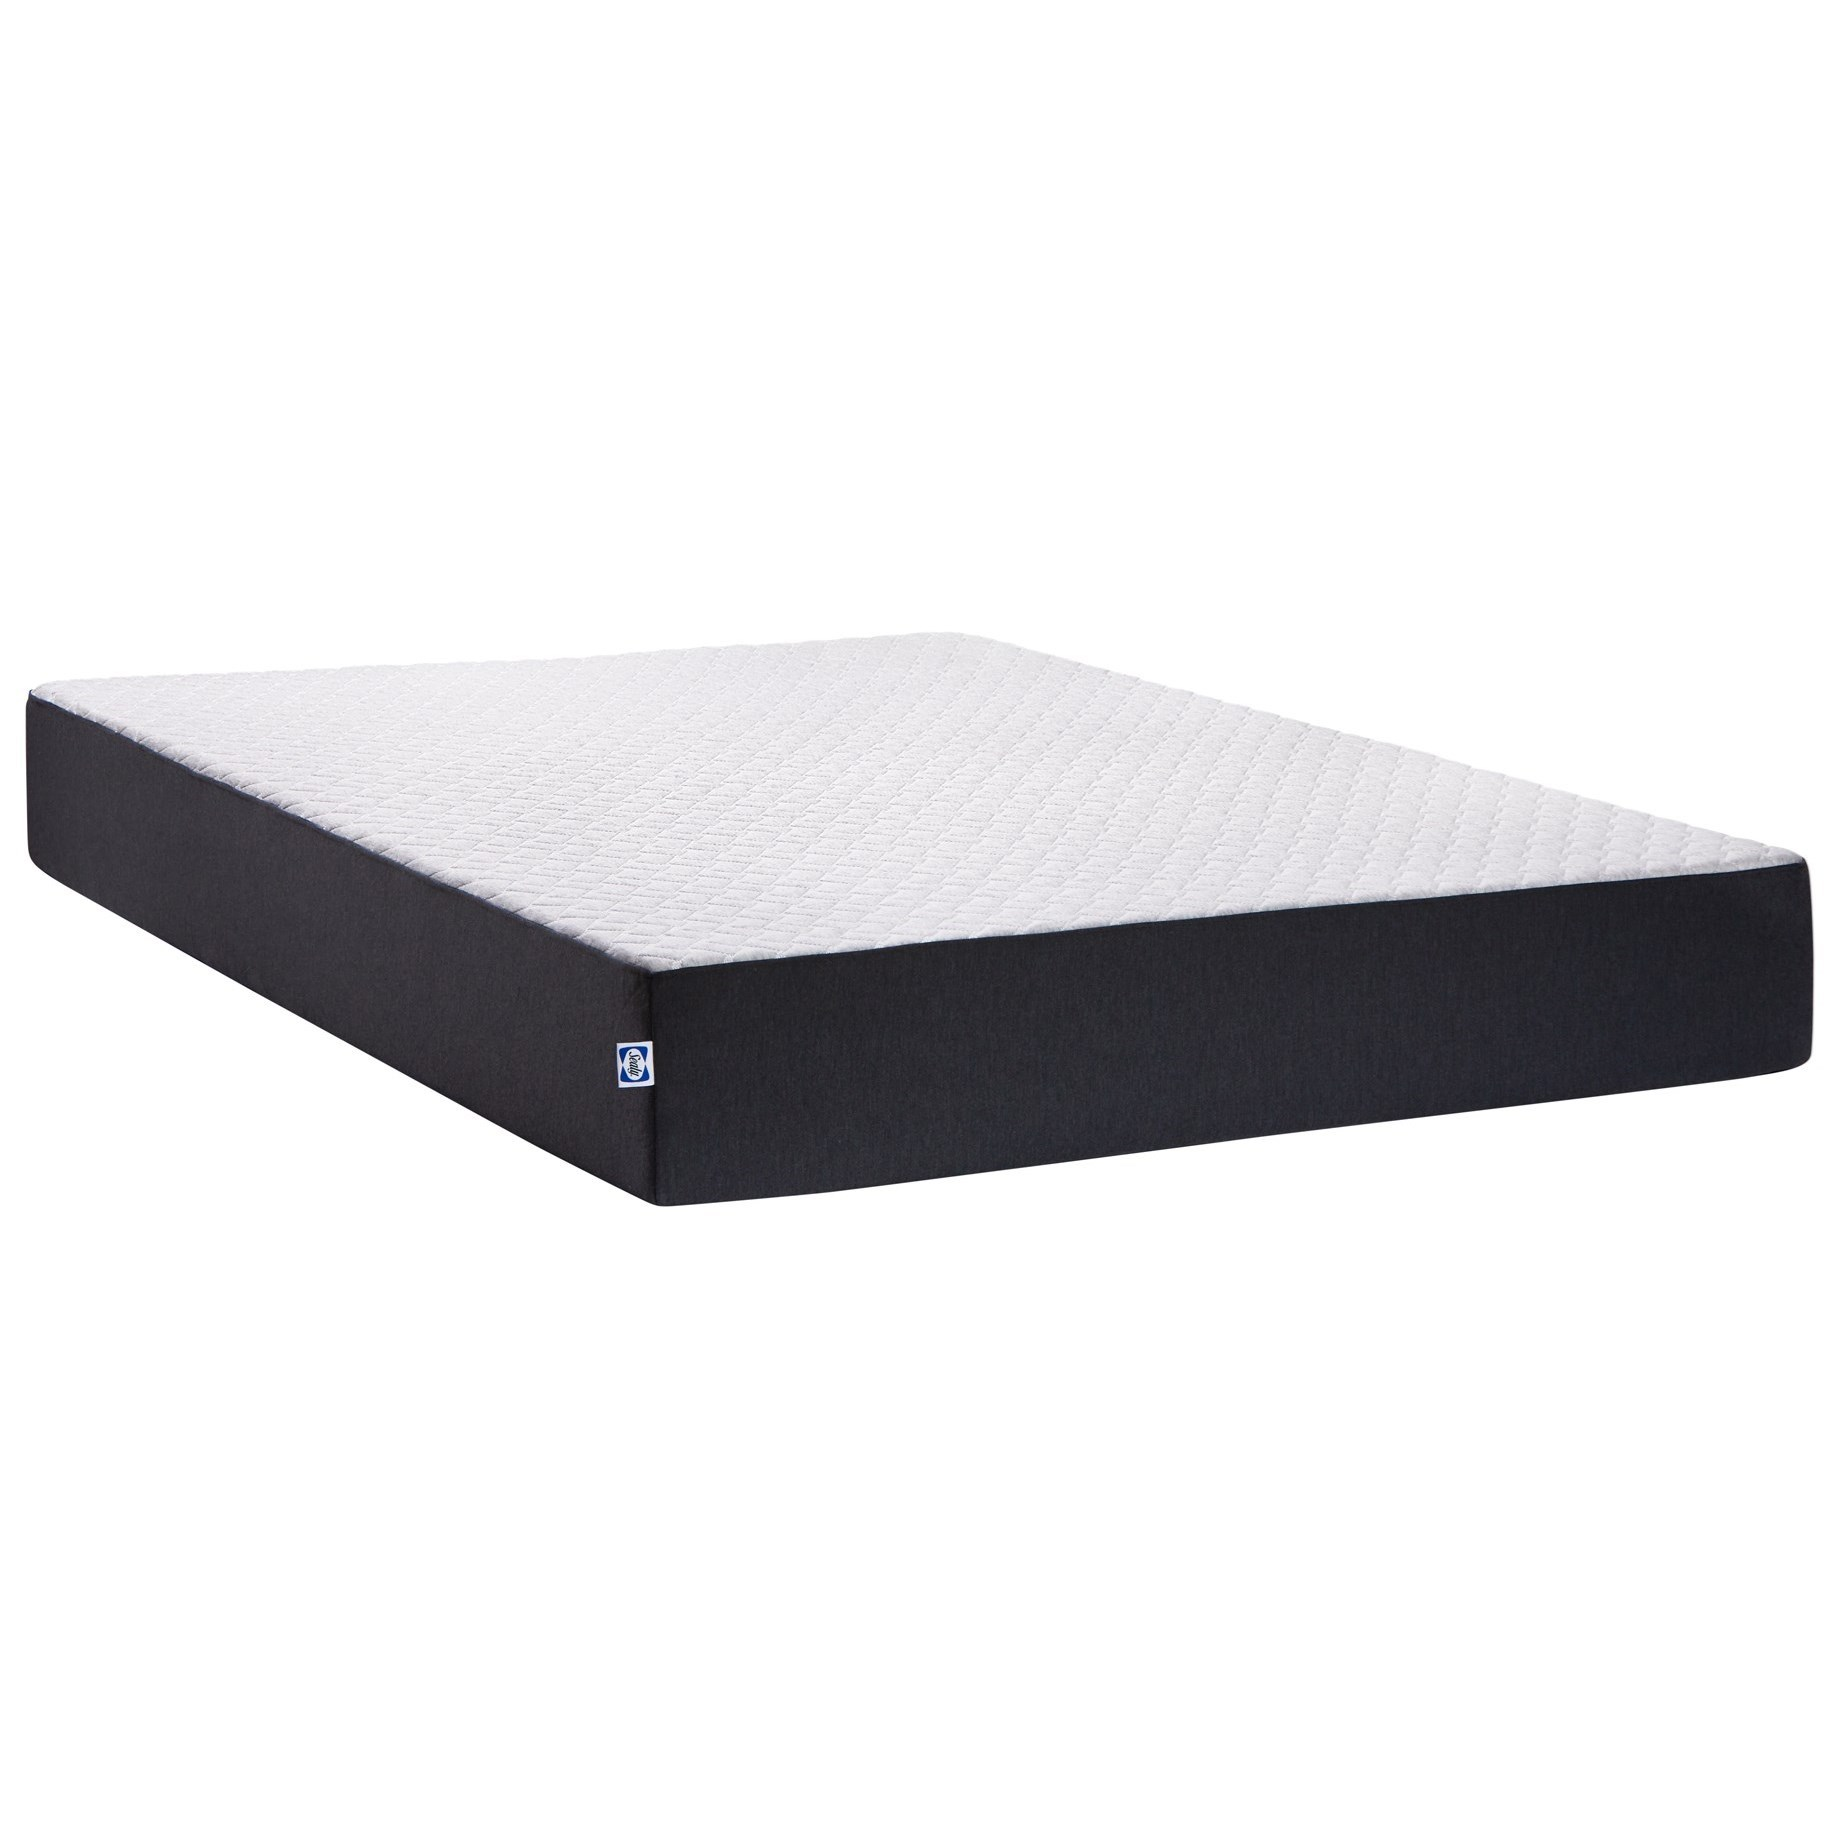 "Twin 10"" Medium Feel Hybrid Mattress"